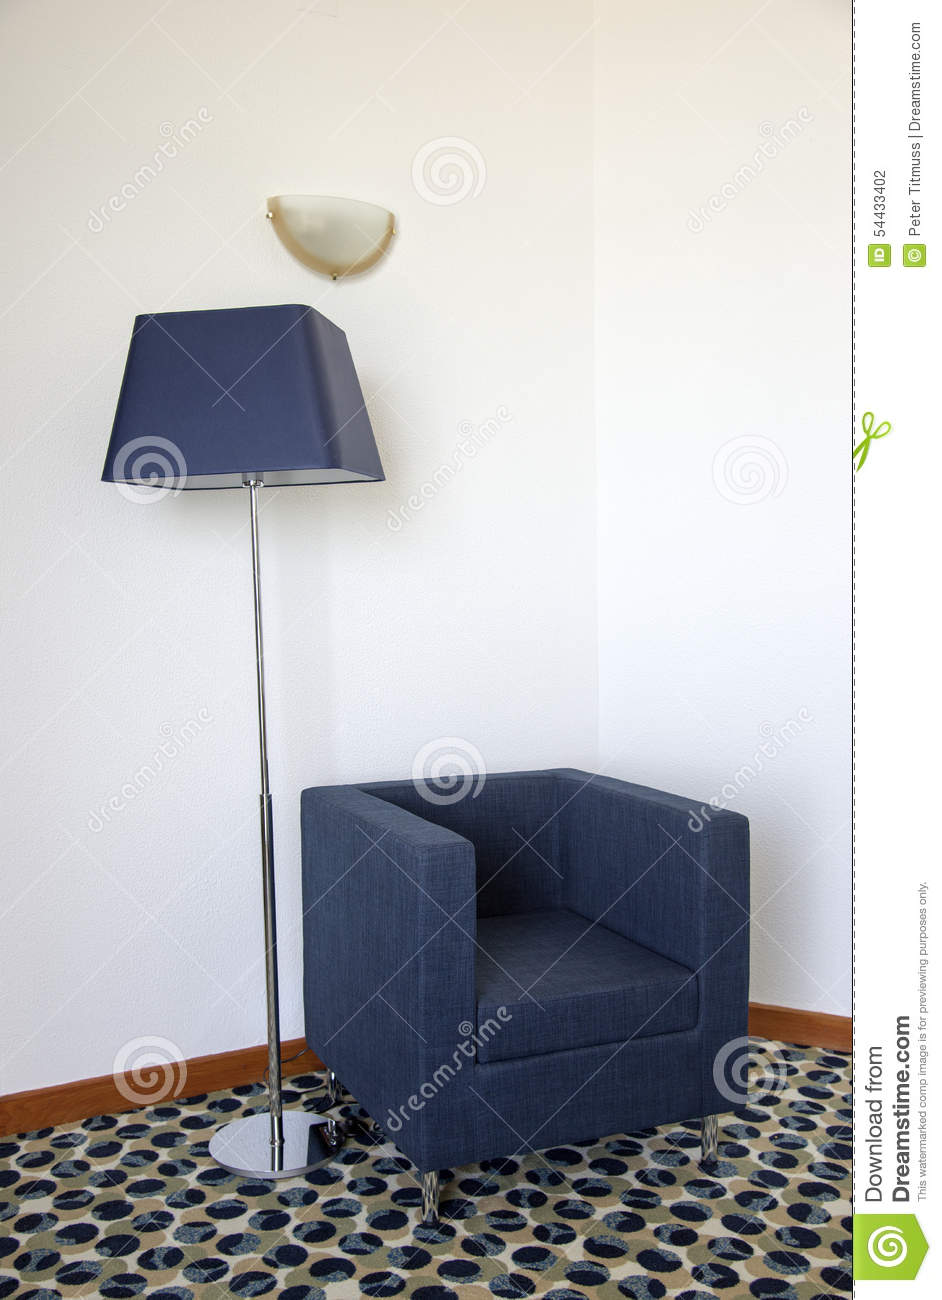 Single Seat Armchair And Light In Corner Of Room Royalty